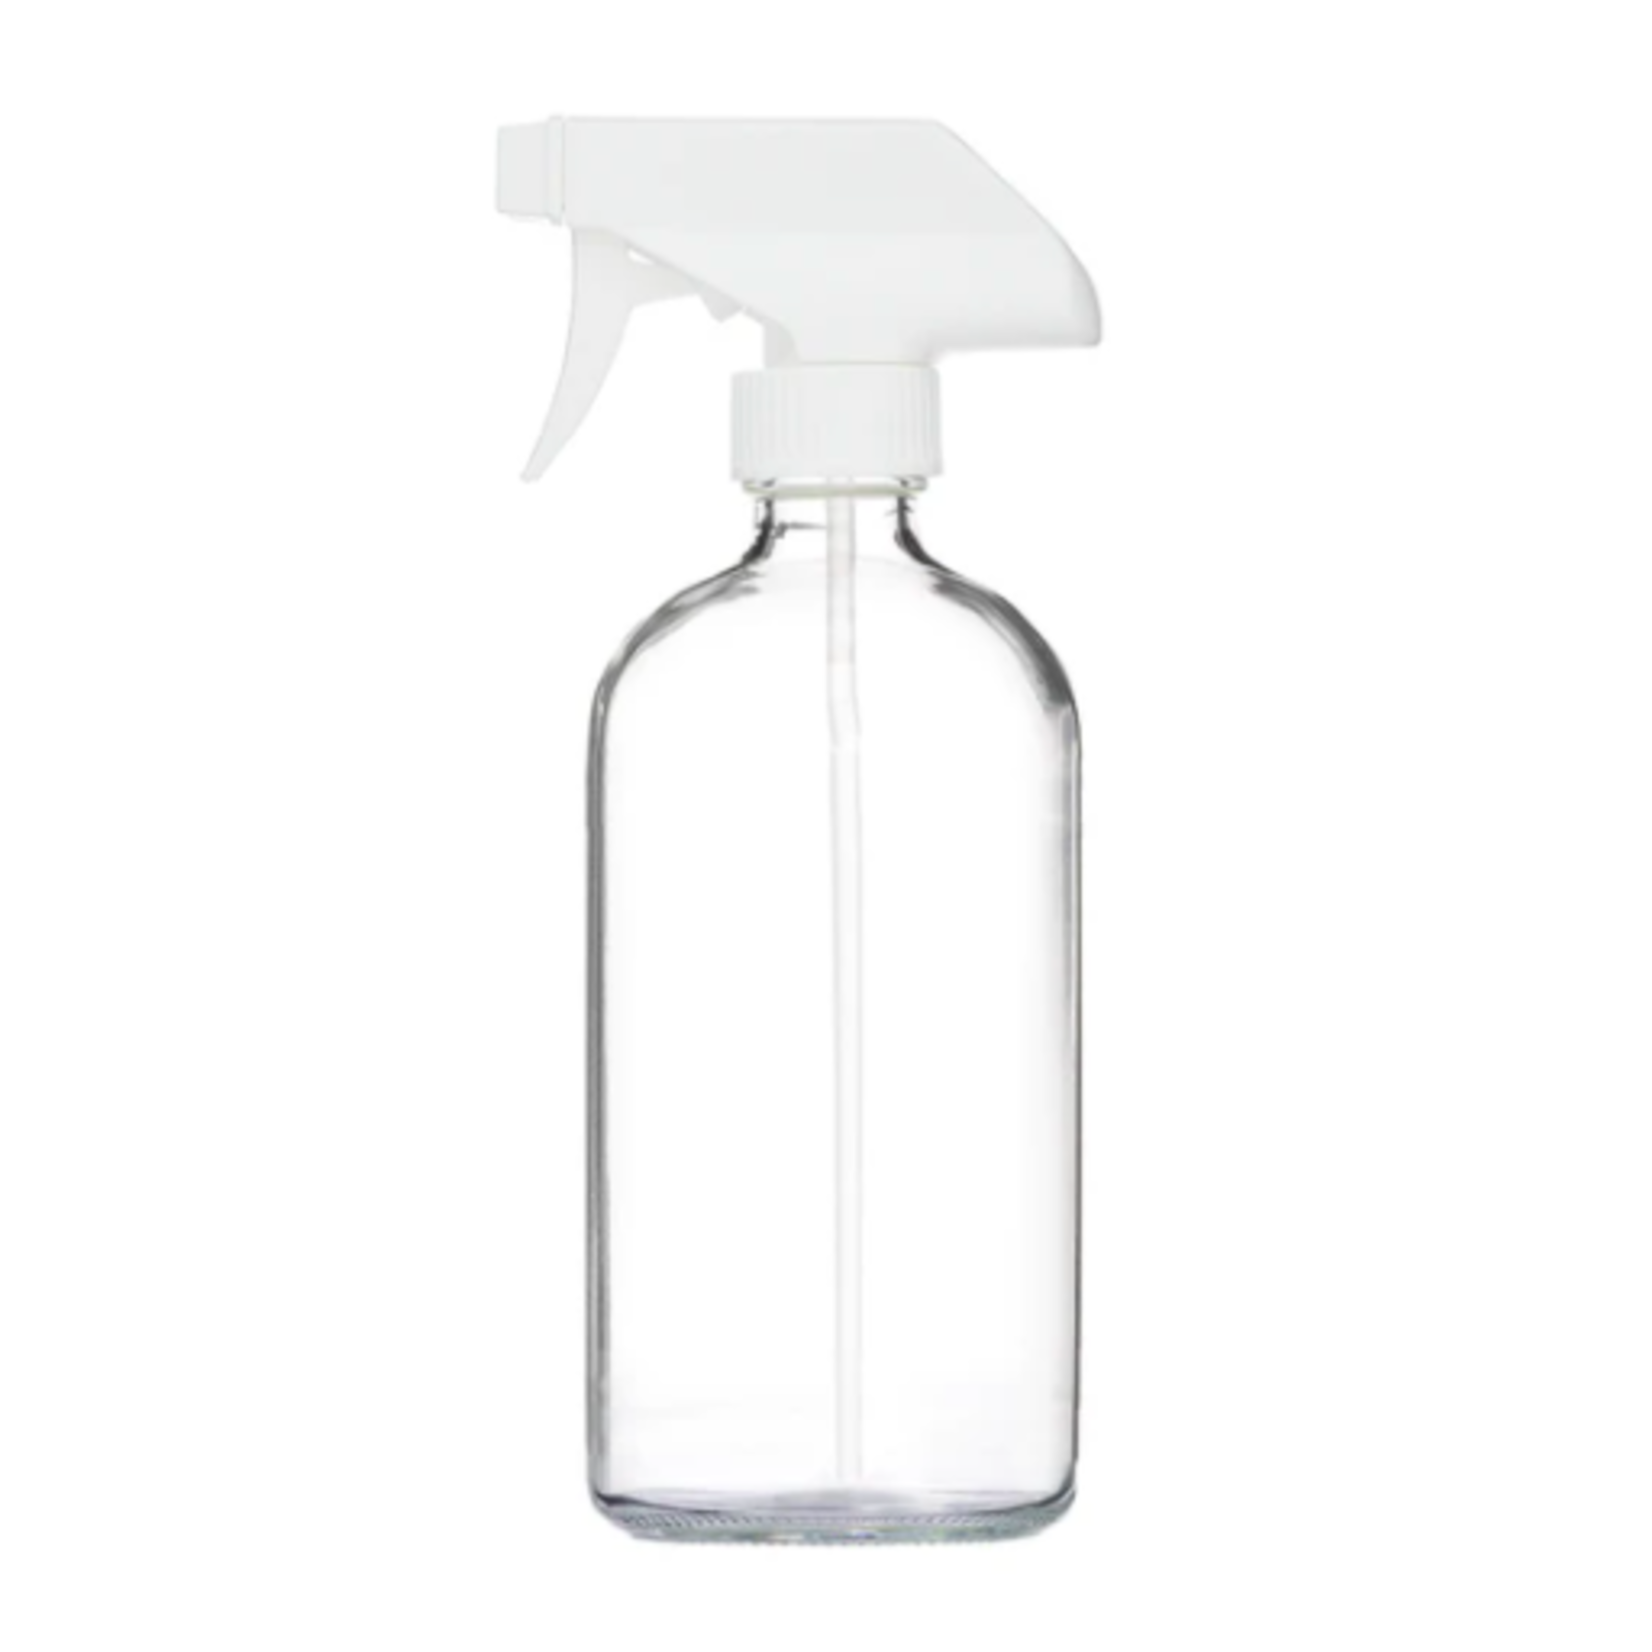 Meliora Cleaning Products 16 oz. Glass Spray Bottle